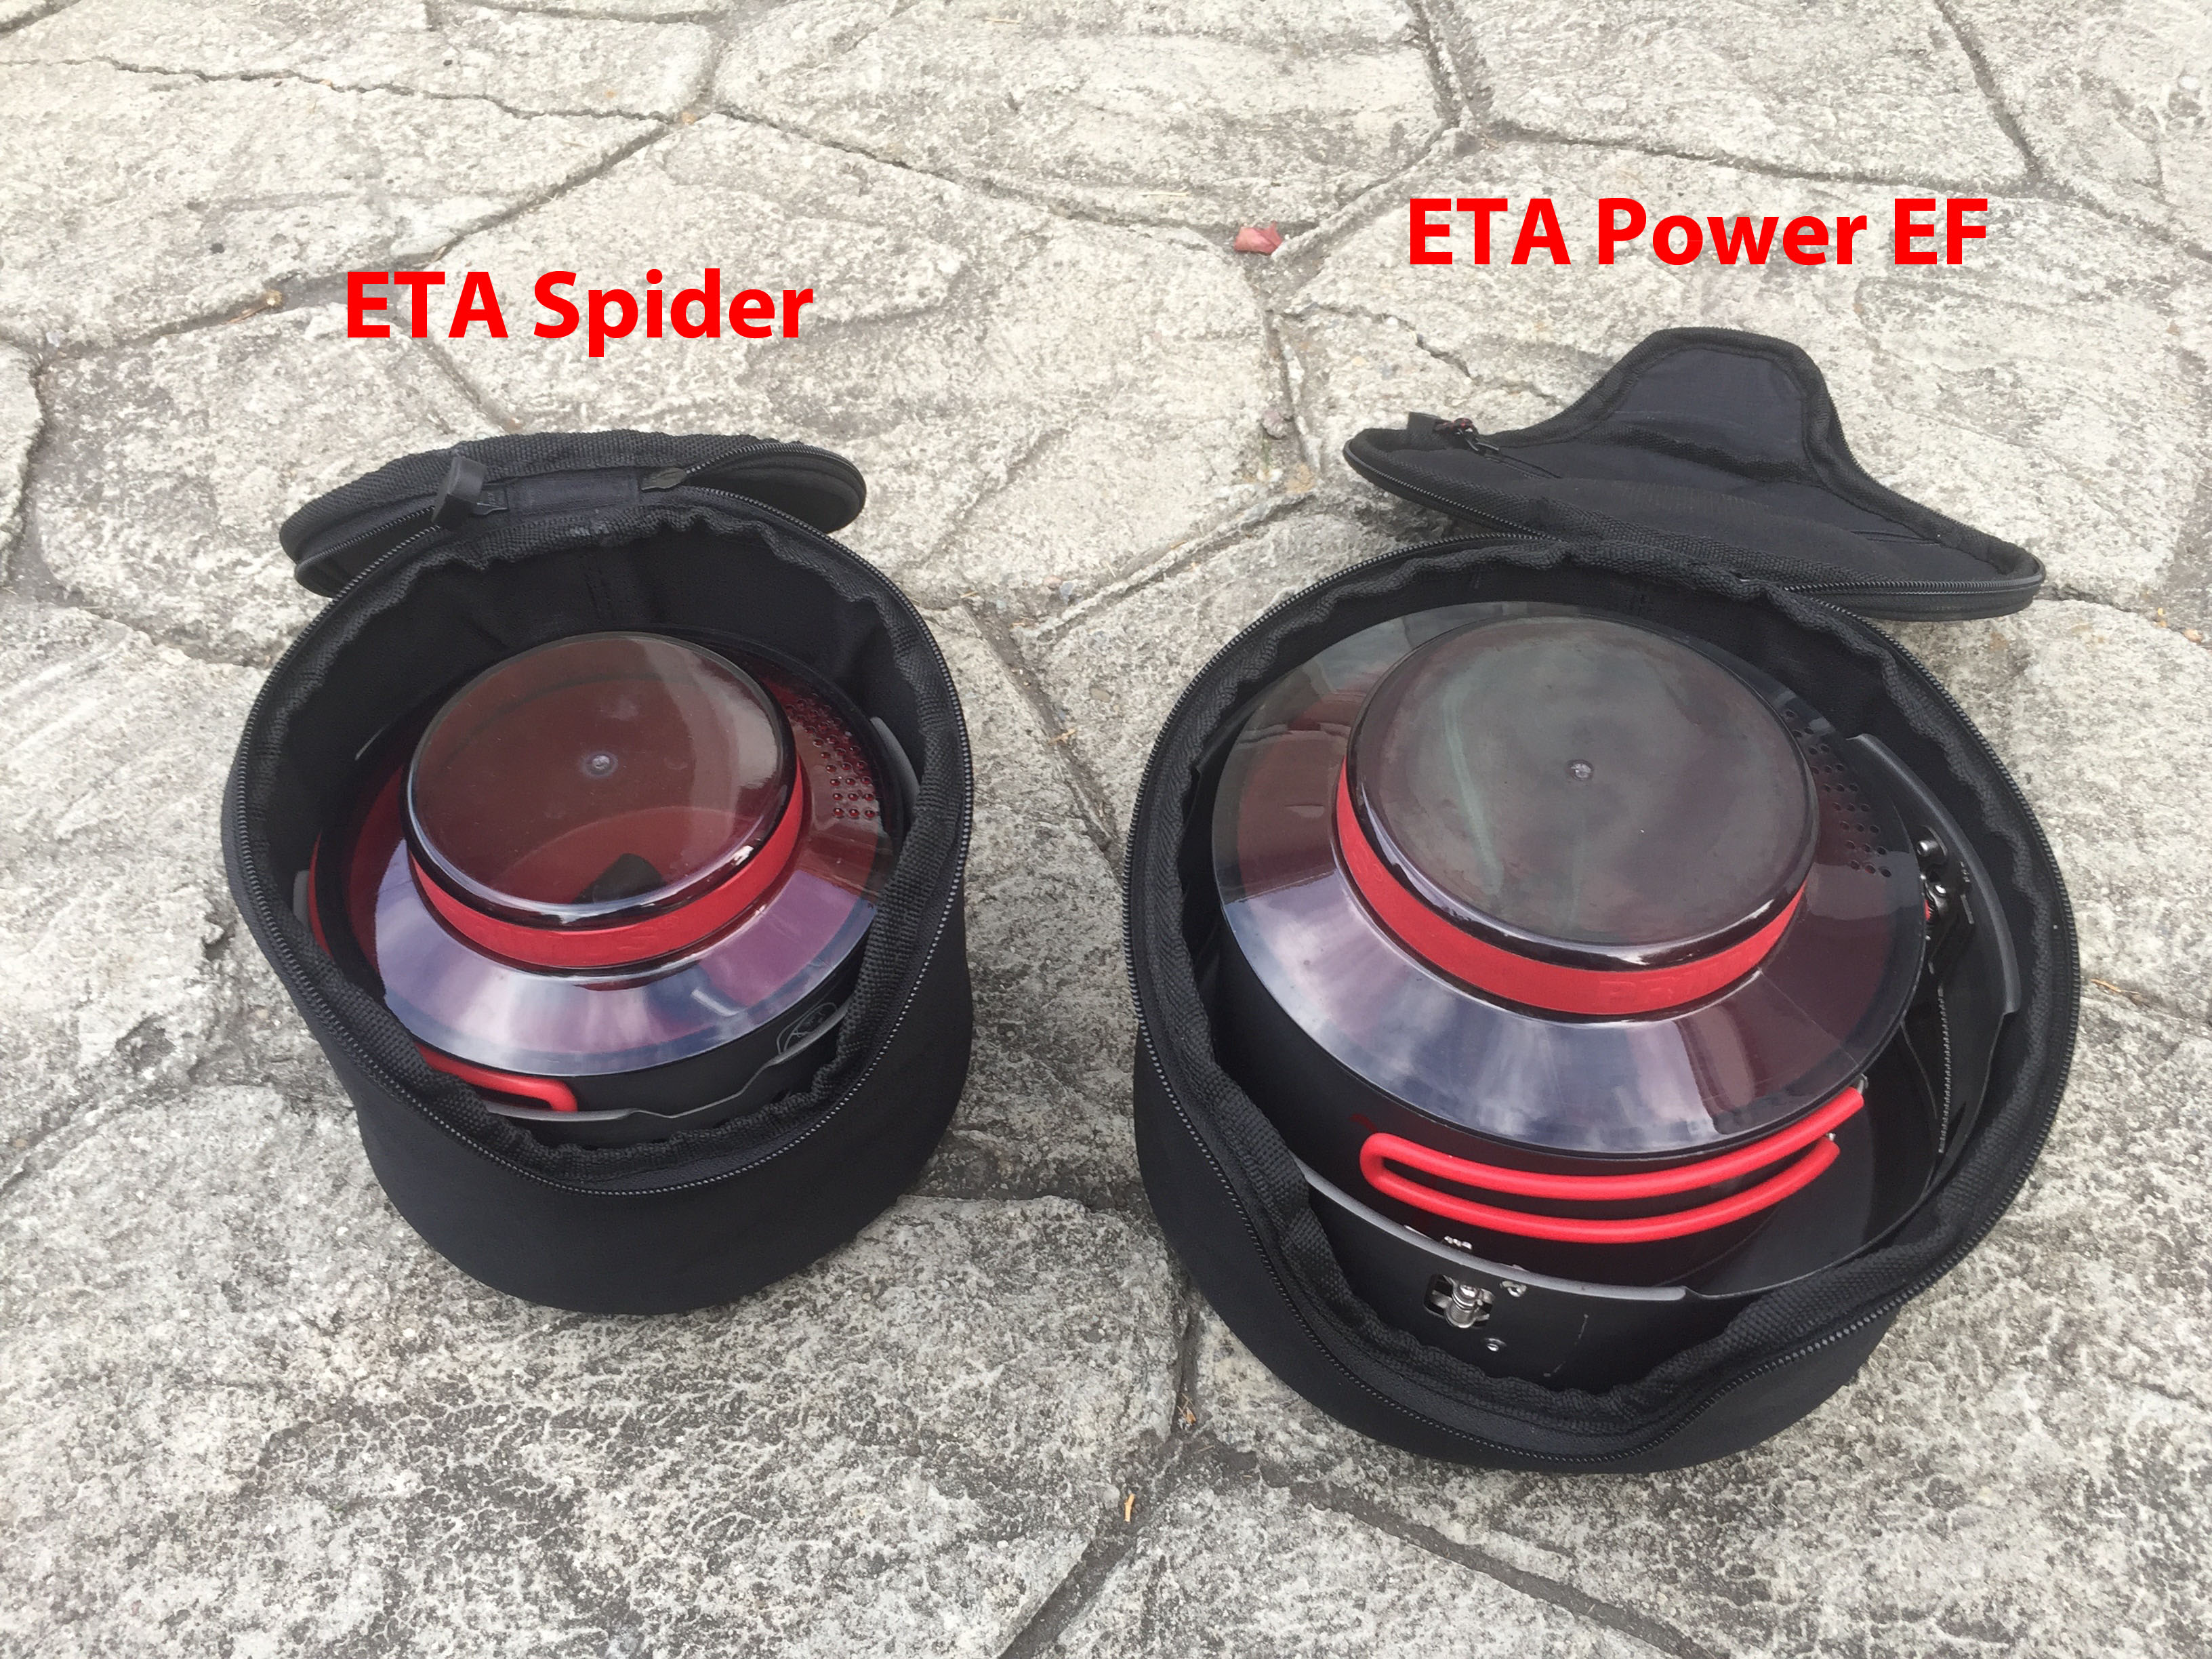 Primus Eta Power EF Stove Review | Camping Stoves and Other Gear ...